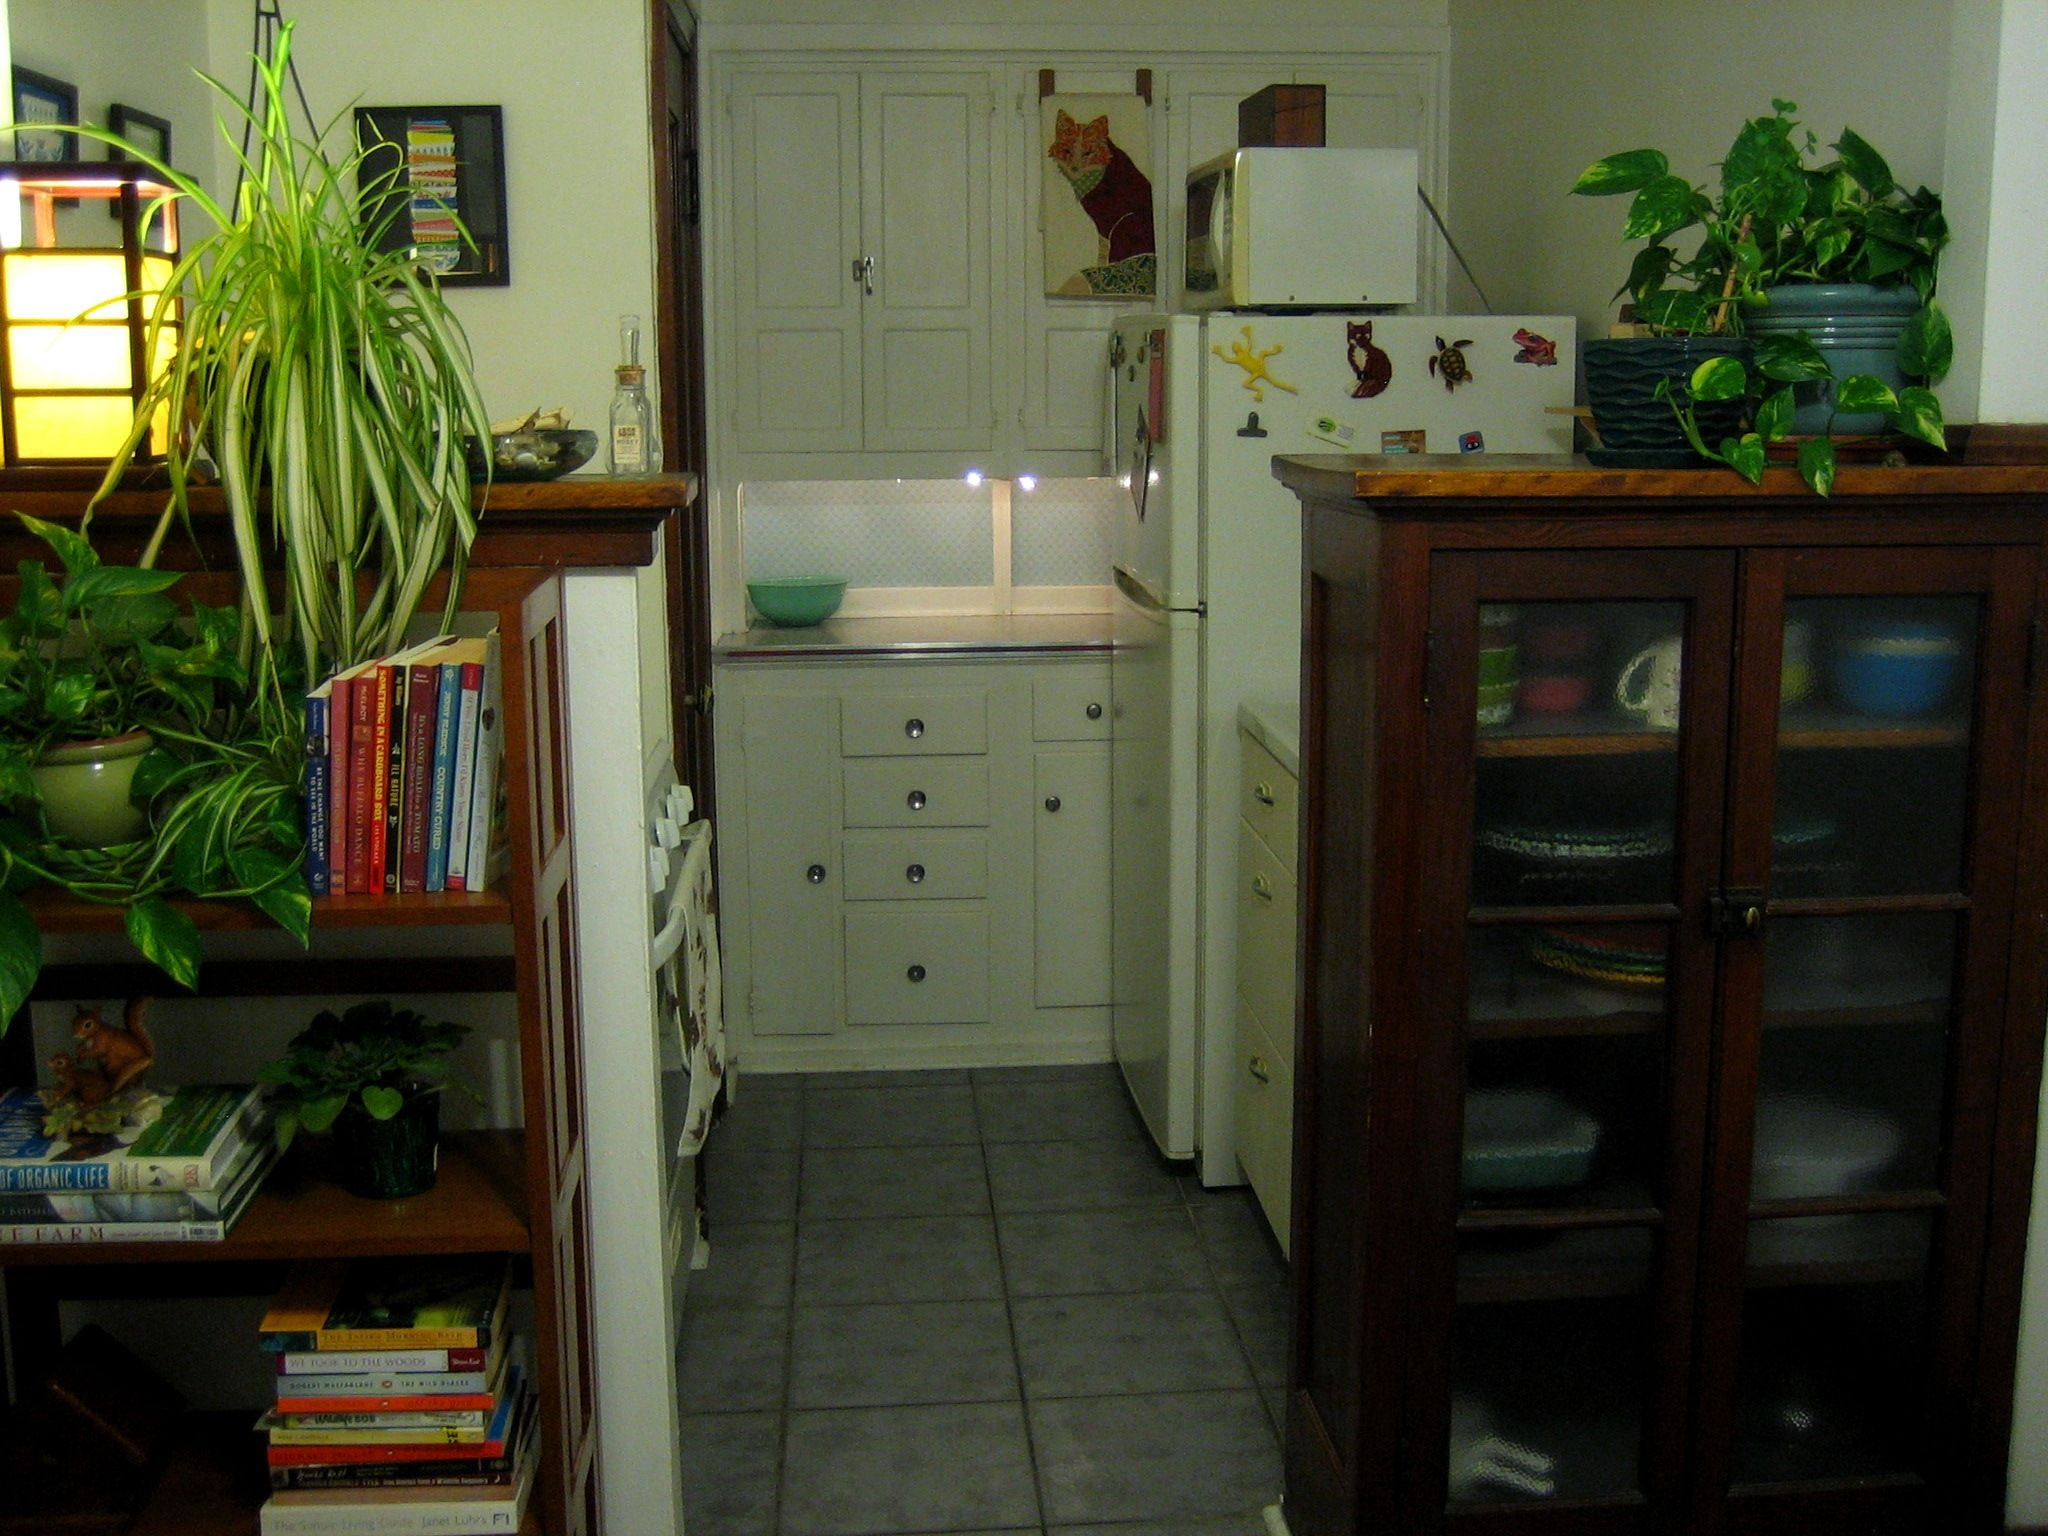 My tiny kitchen.